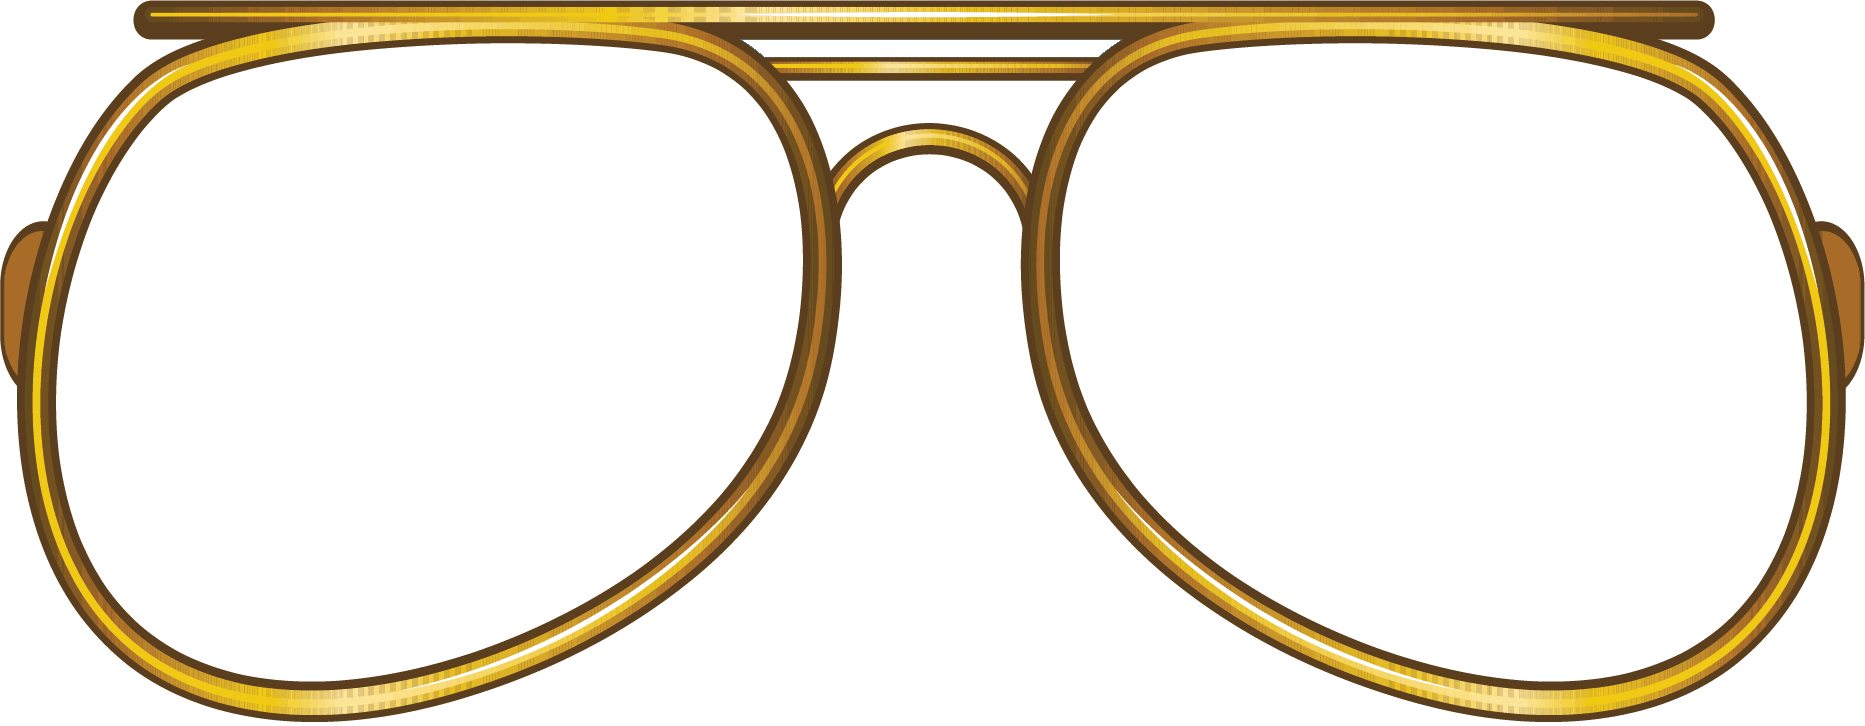 Eyeglasses clipart free images 2